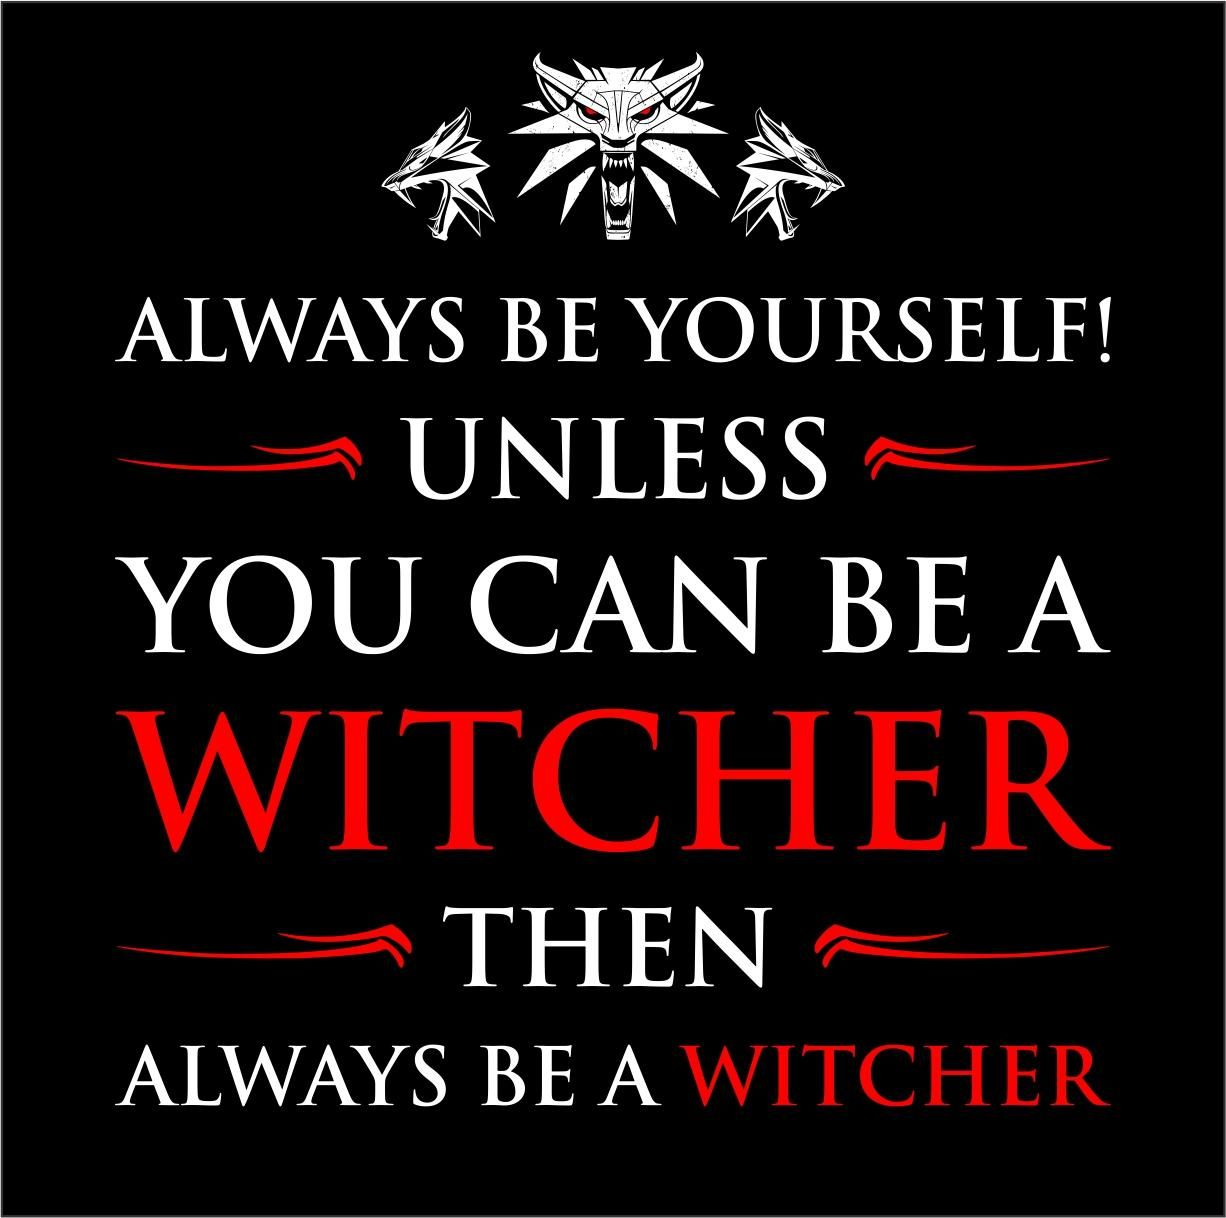 Always Be Yourself Unless You Can Be A Witcher Thewitcher3 Ps4 Wildhunt Ps4share Games Gaming Thewit The Witcher Books The Witcher Wild Hunt The Witcher